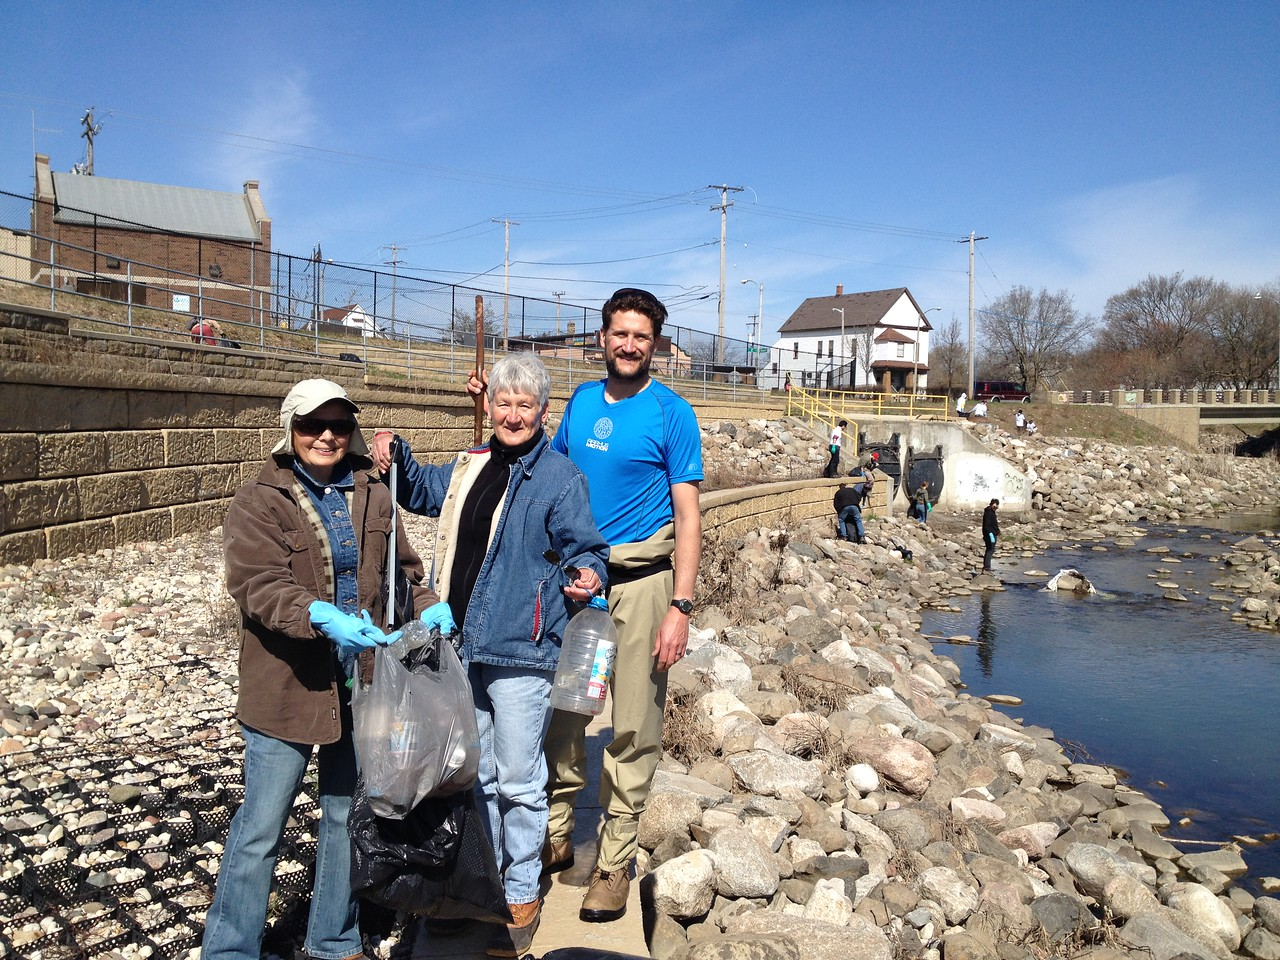 Pete Levi's mother and a friend also volunteered for the river cleanup.  THANKS!!